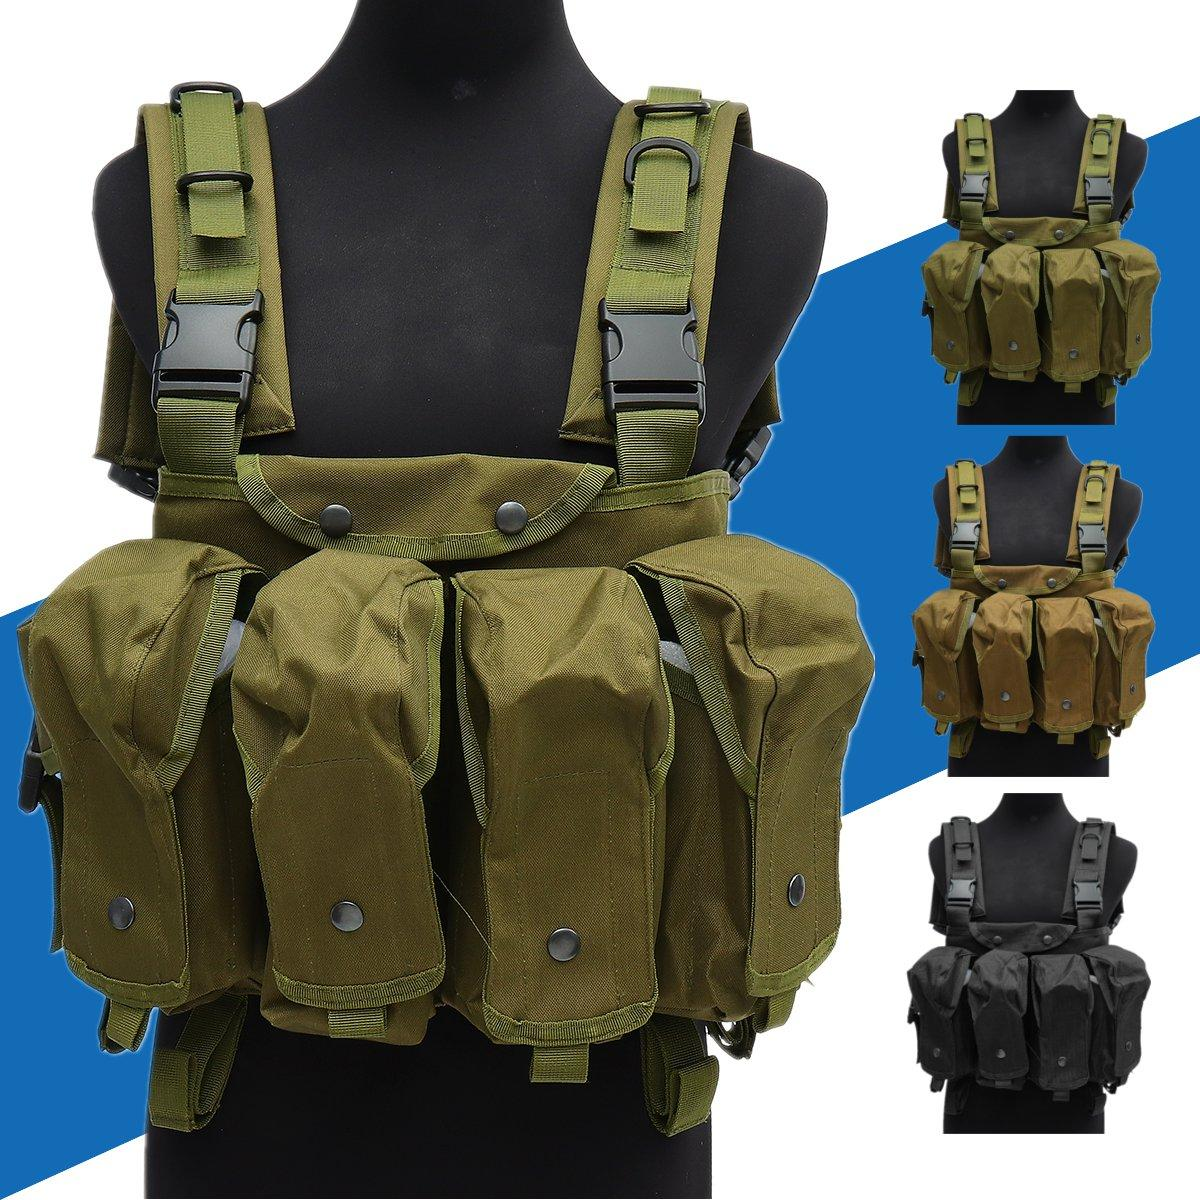 Unisex Tactical Vest Outdoor Combat Game Training Storage Carrier Belly Pocket Vest